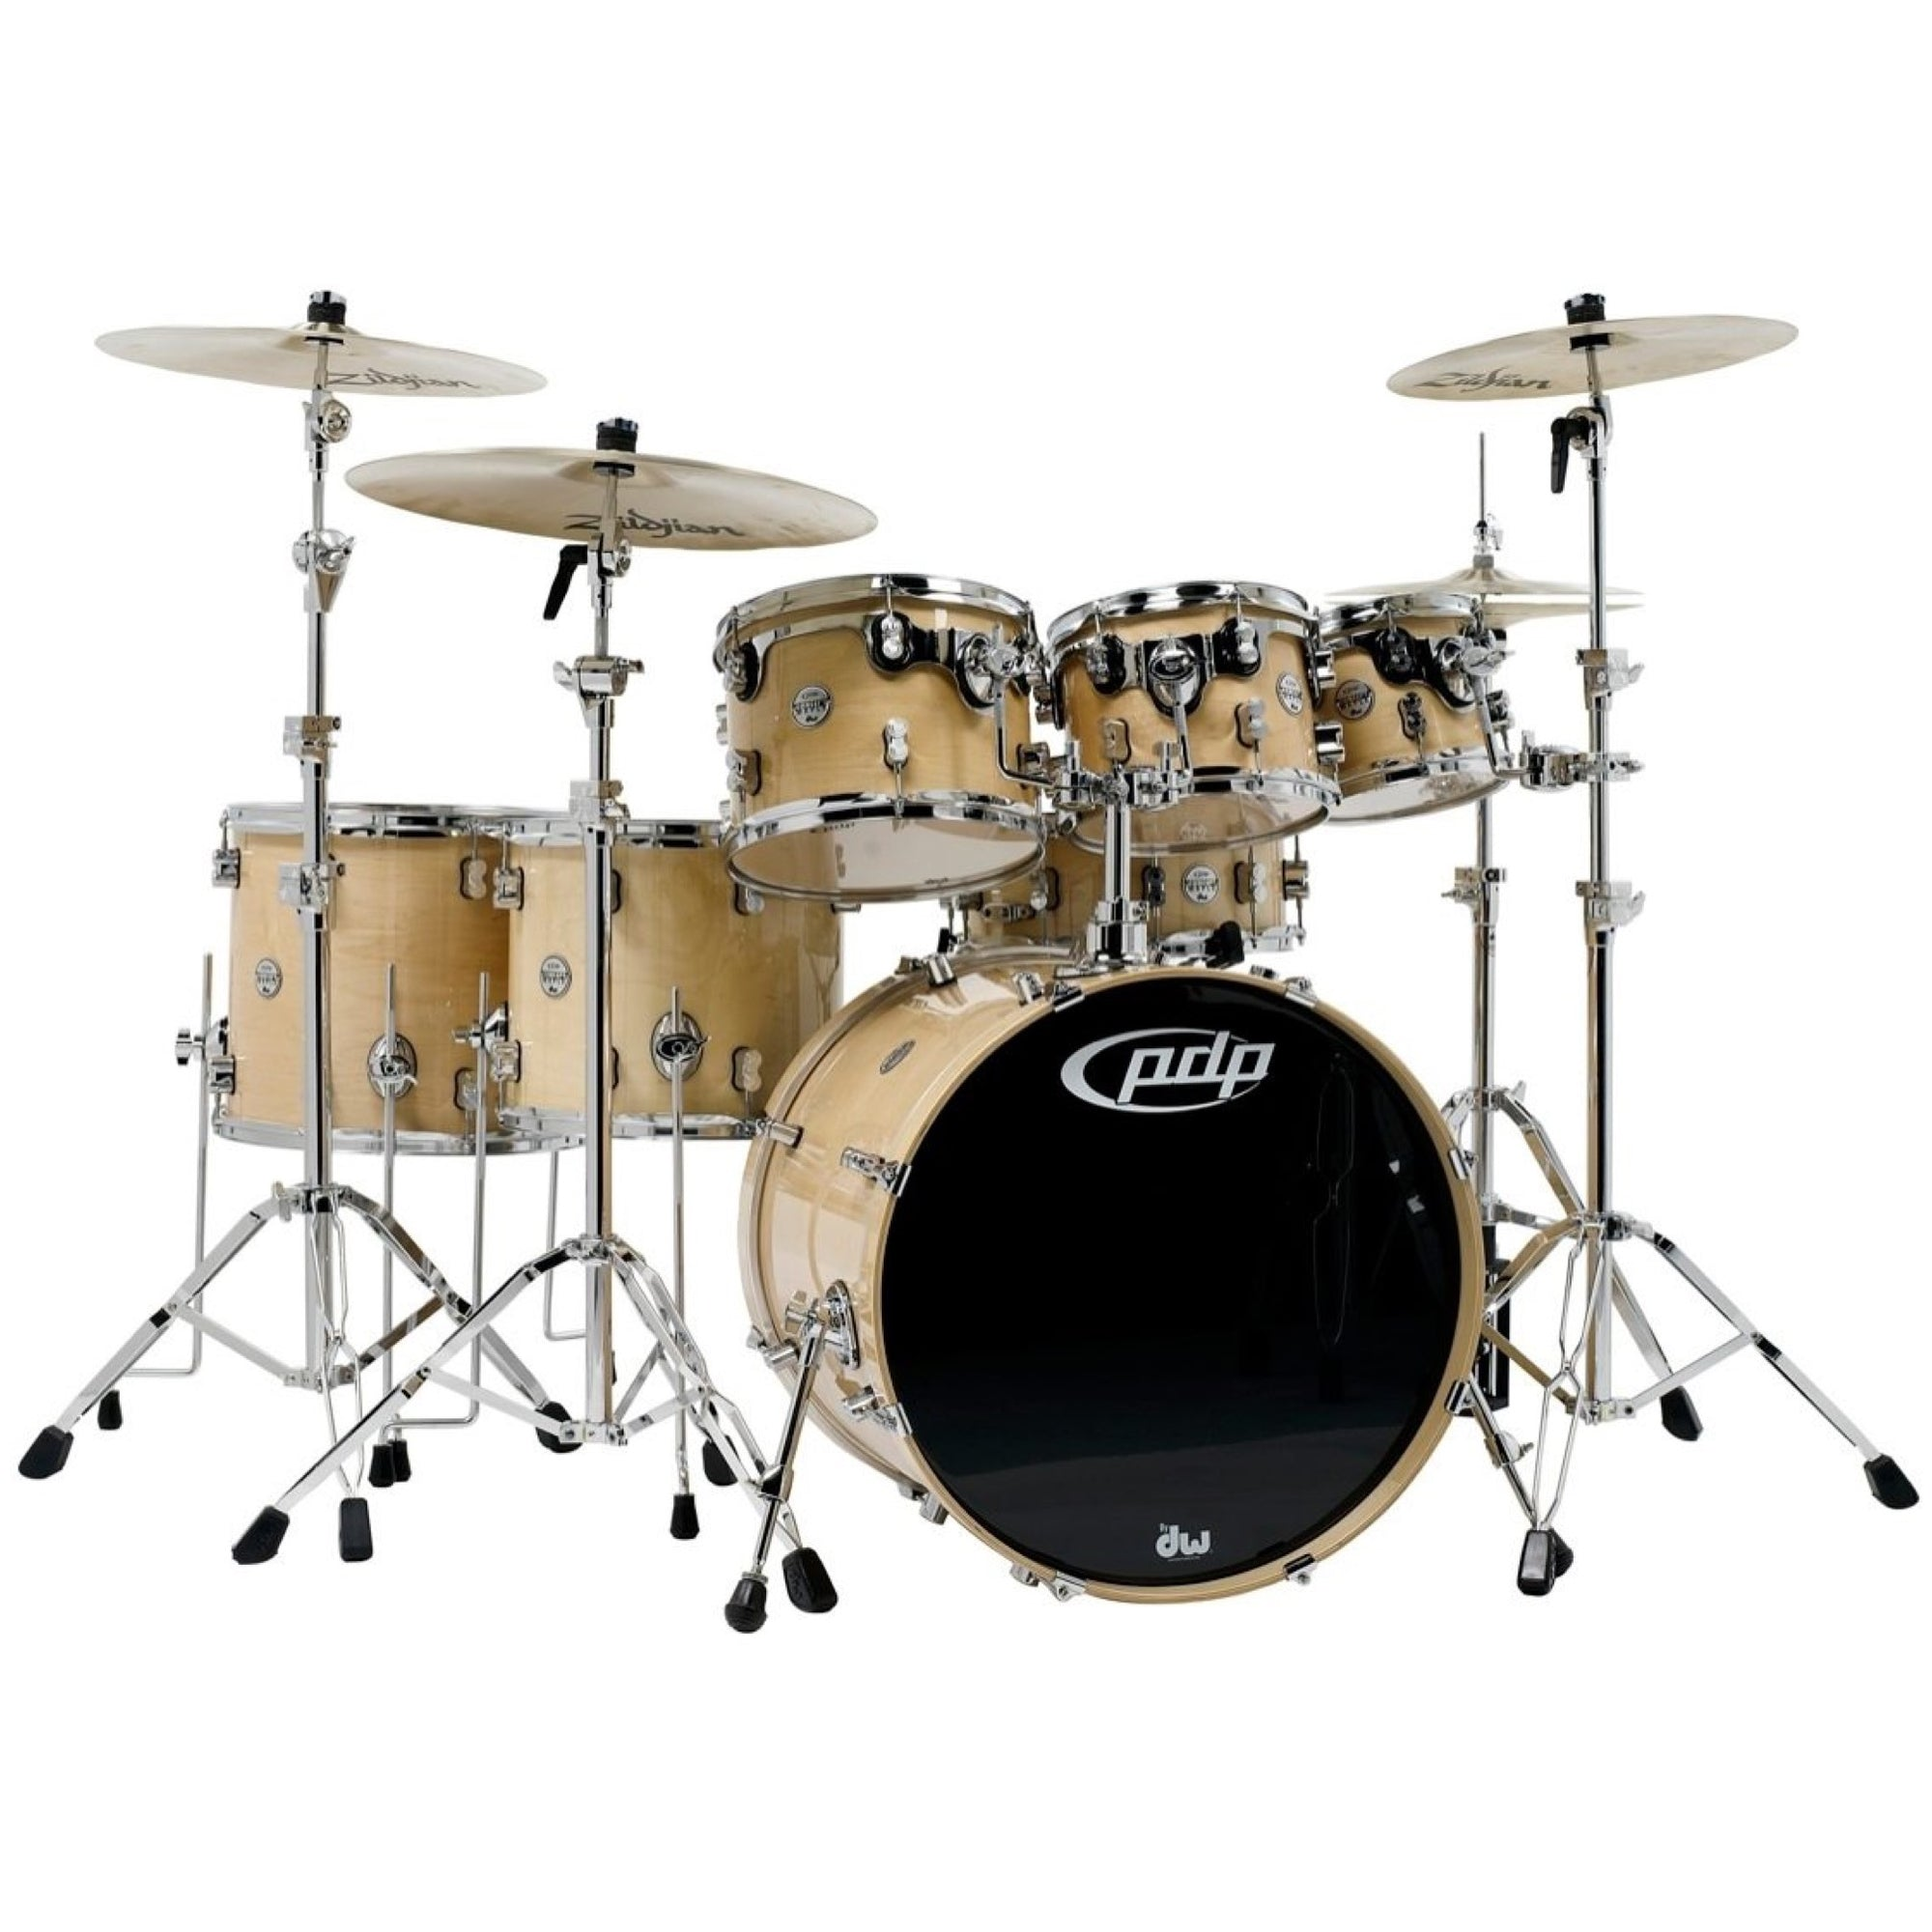 Pacific Drums Concept Maple Drum Shell Kit, 7-Piece, Natural, with Pacific Drum 800 Series Hardware